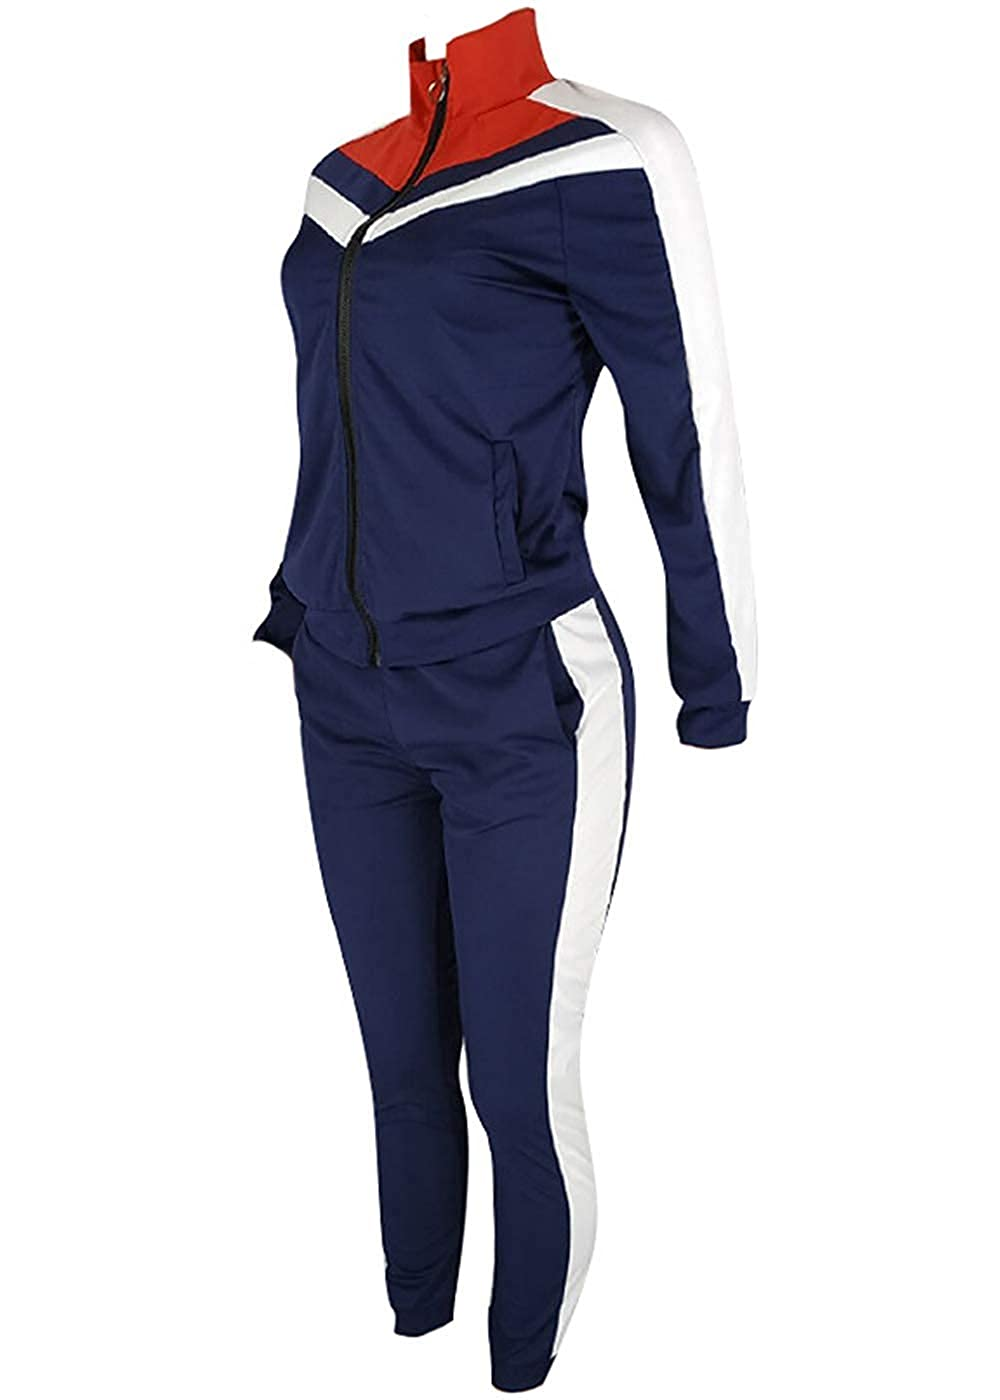 Hanglin Trade Womens Tracksuits 2 Piece Outfits Jacket Long Sleeve Jogger Suit Pants Set Sweatsuits